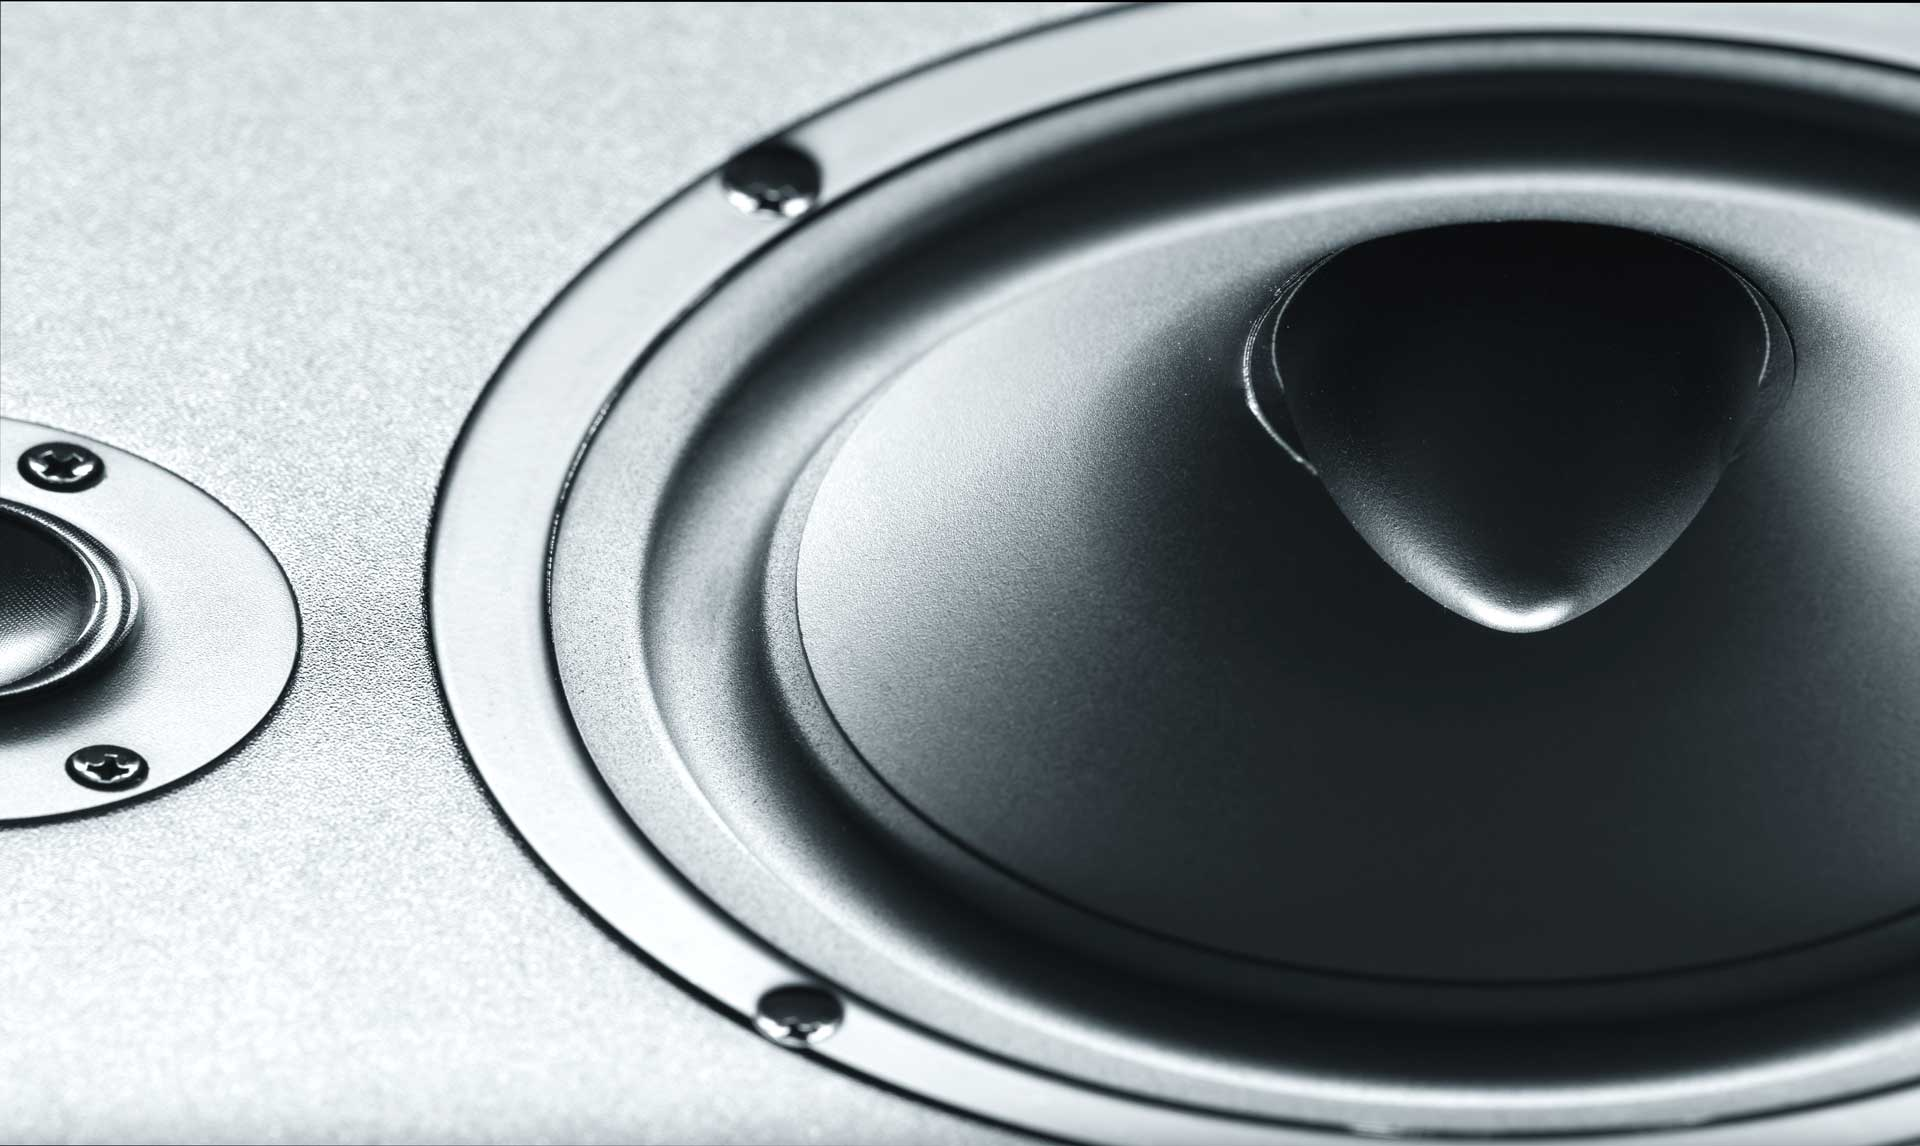 speaker and subwoofer mounted to a horizontal surface